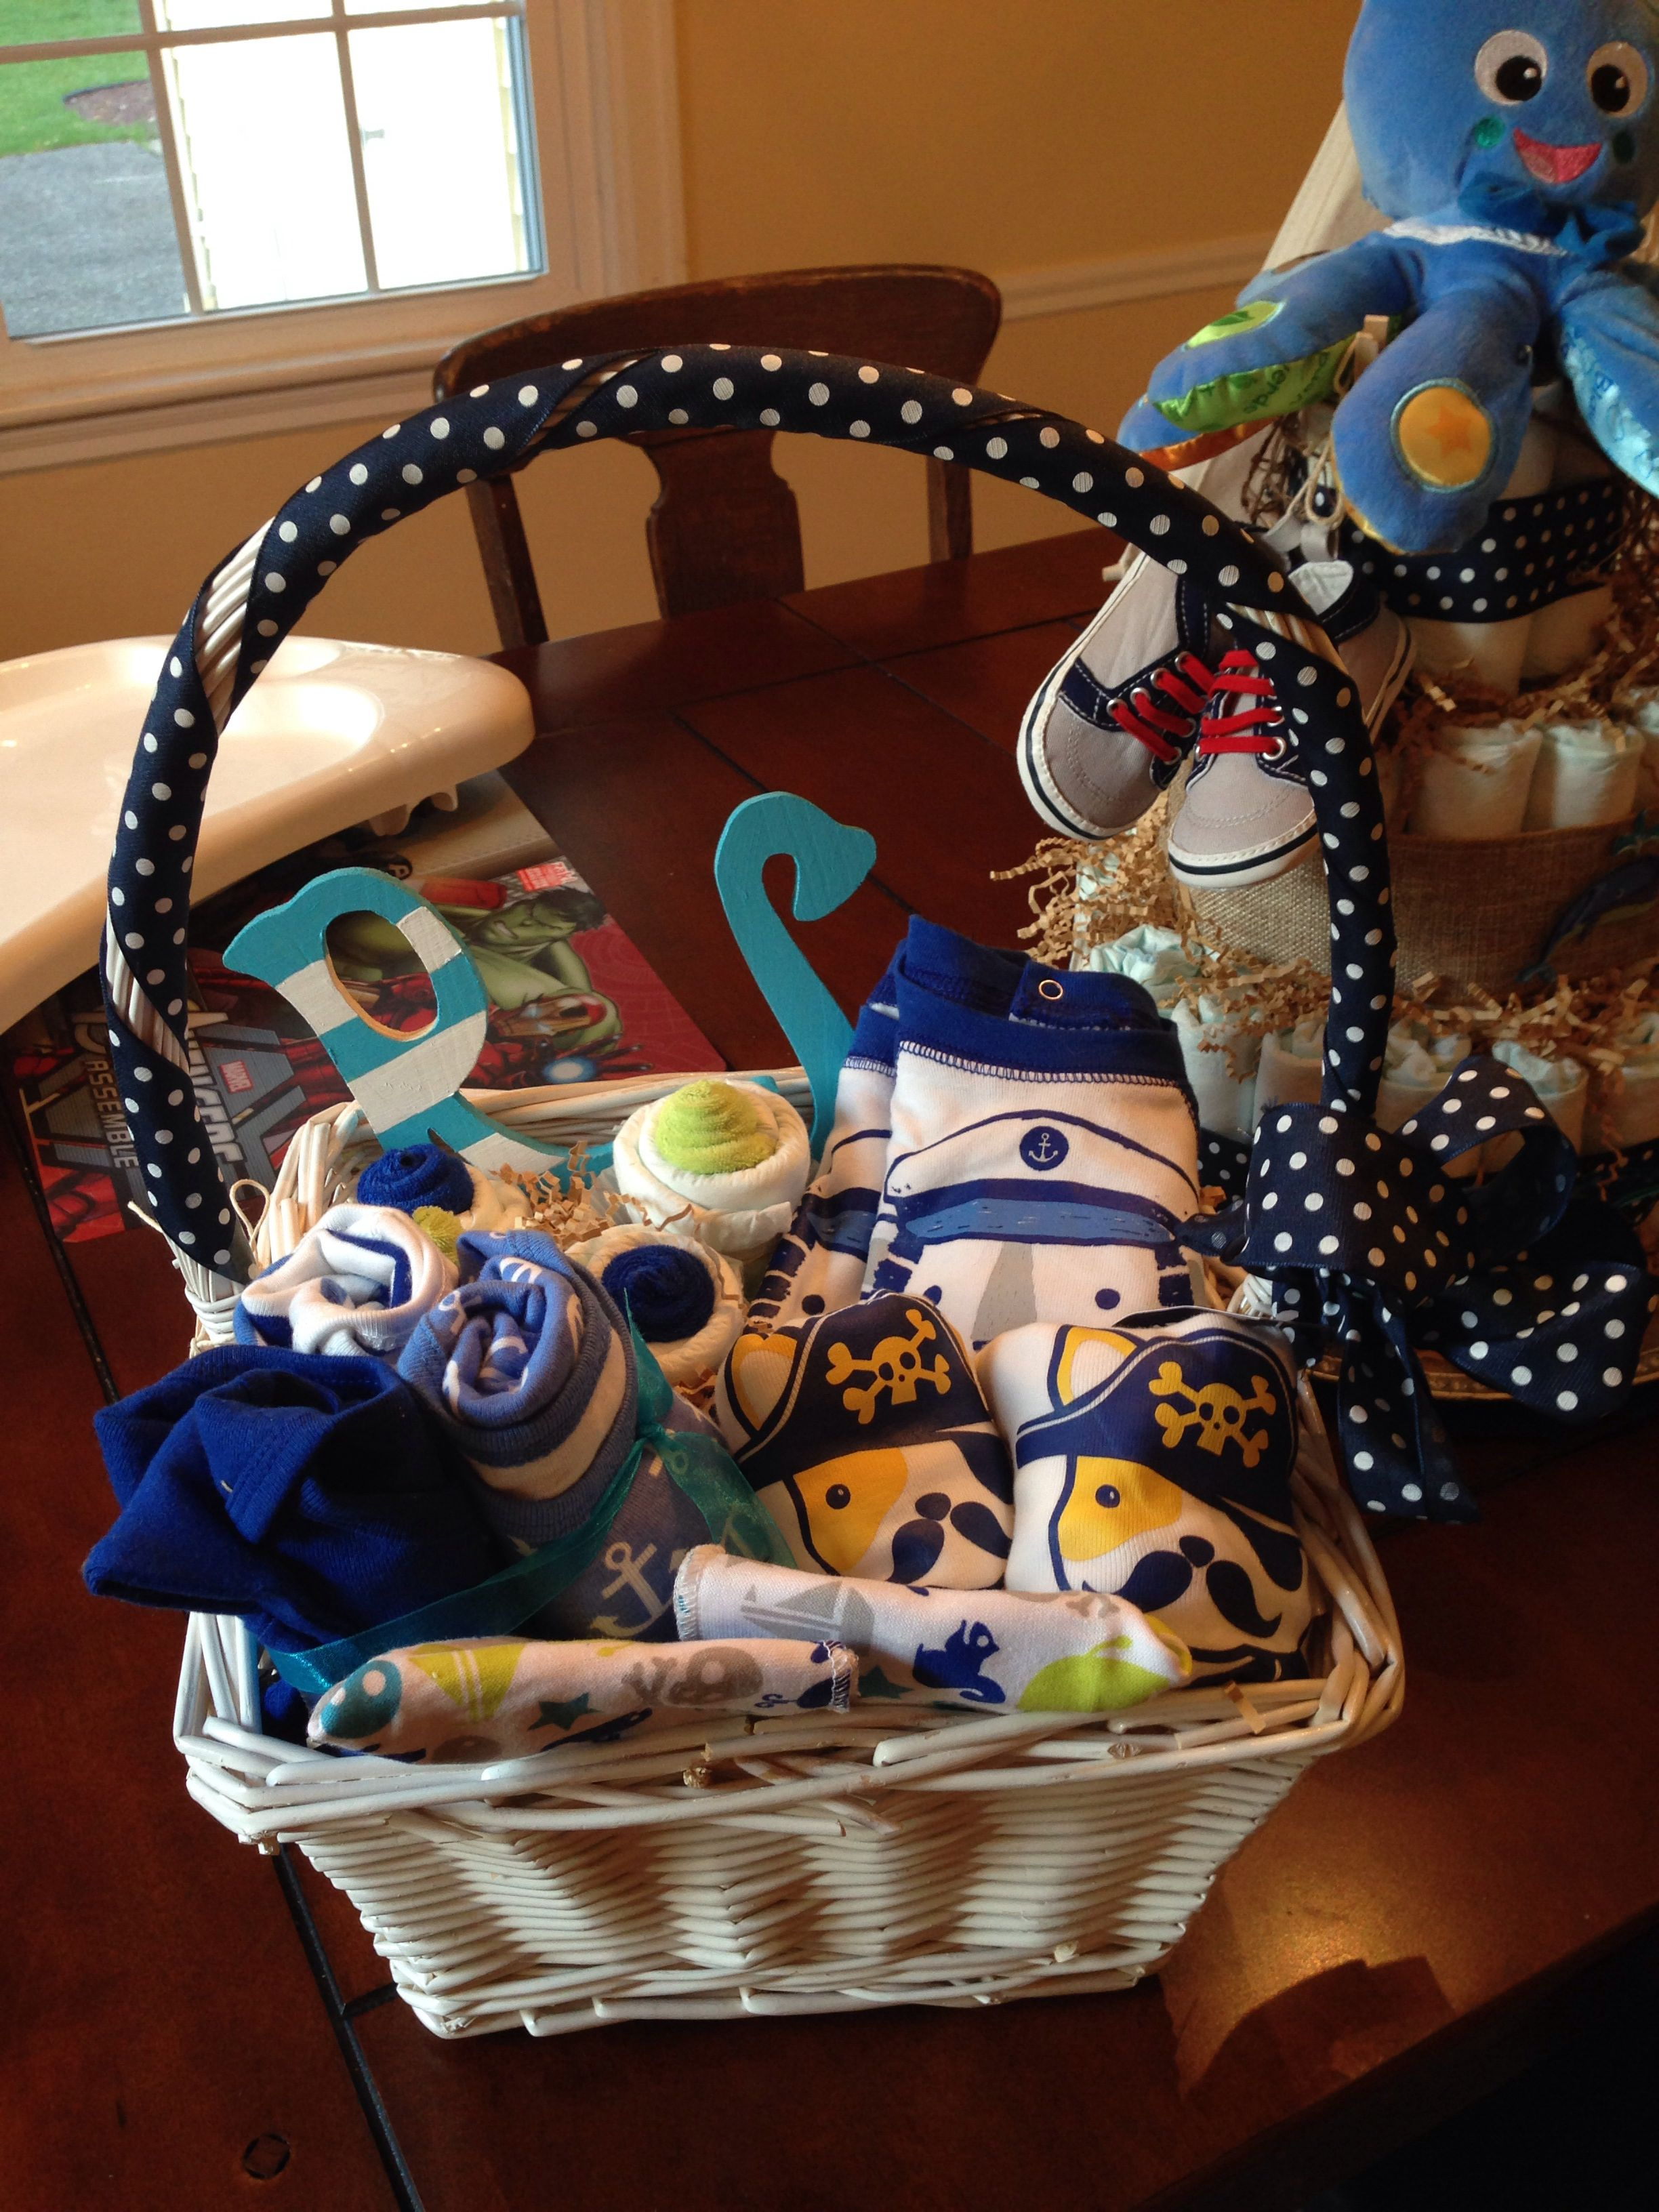 This was a gift basket made by me for a set of twins to match the nautical diaper cake! Yeah for DIY!